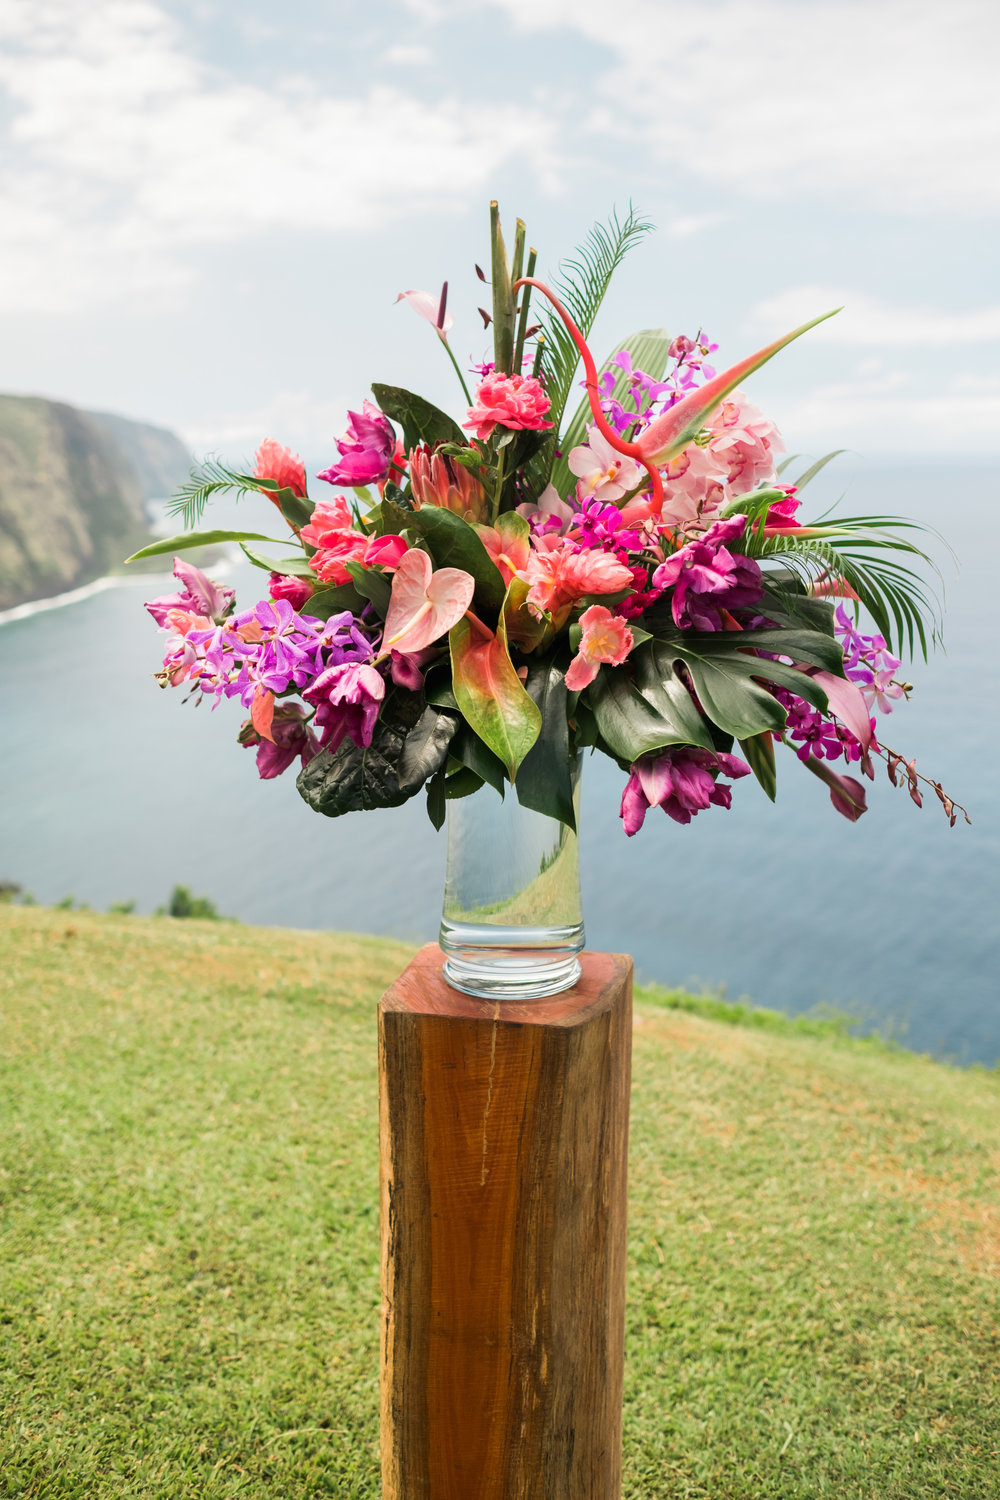 Tropical Arrangement of Orchids, Anthurium, and Birds of Paradise